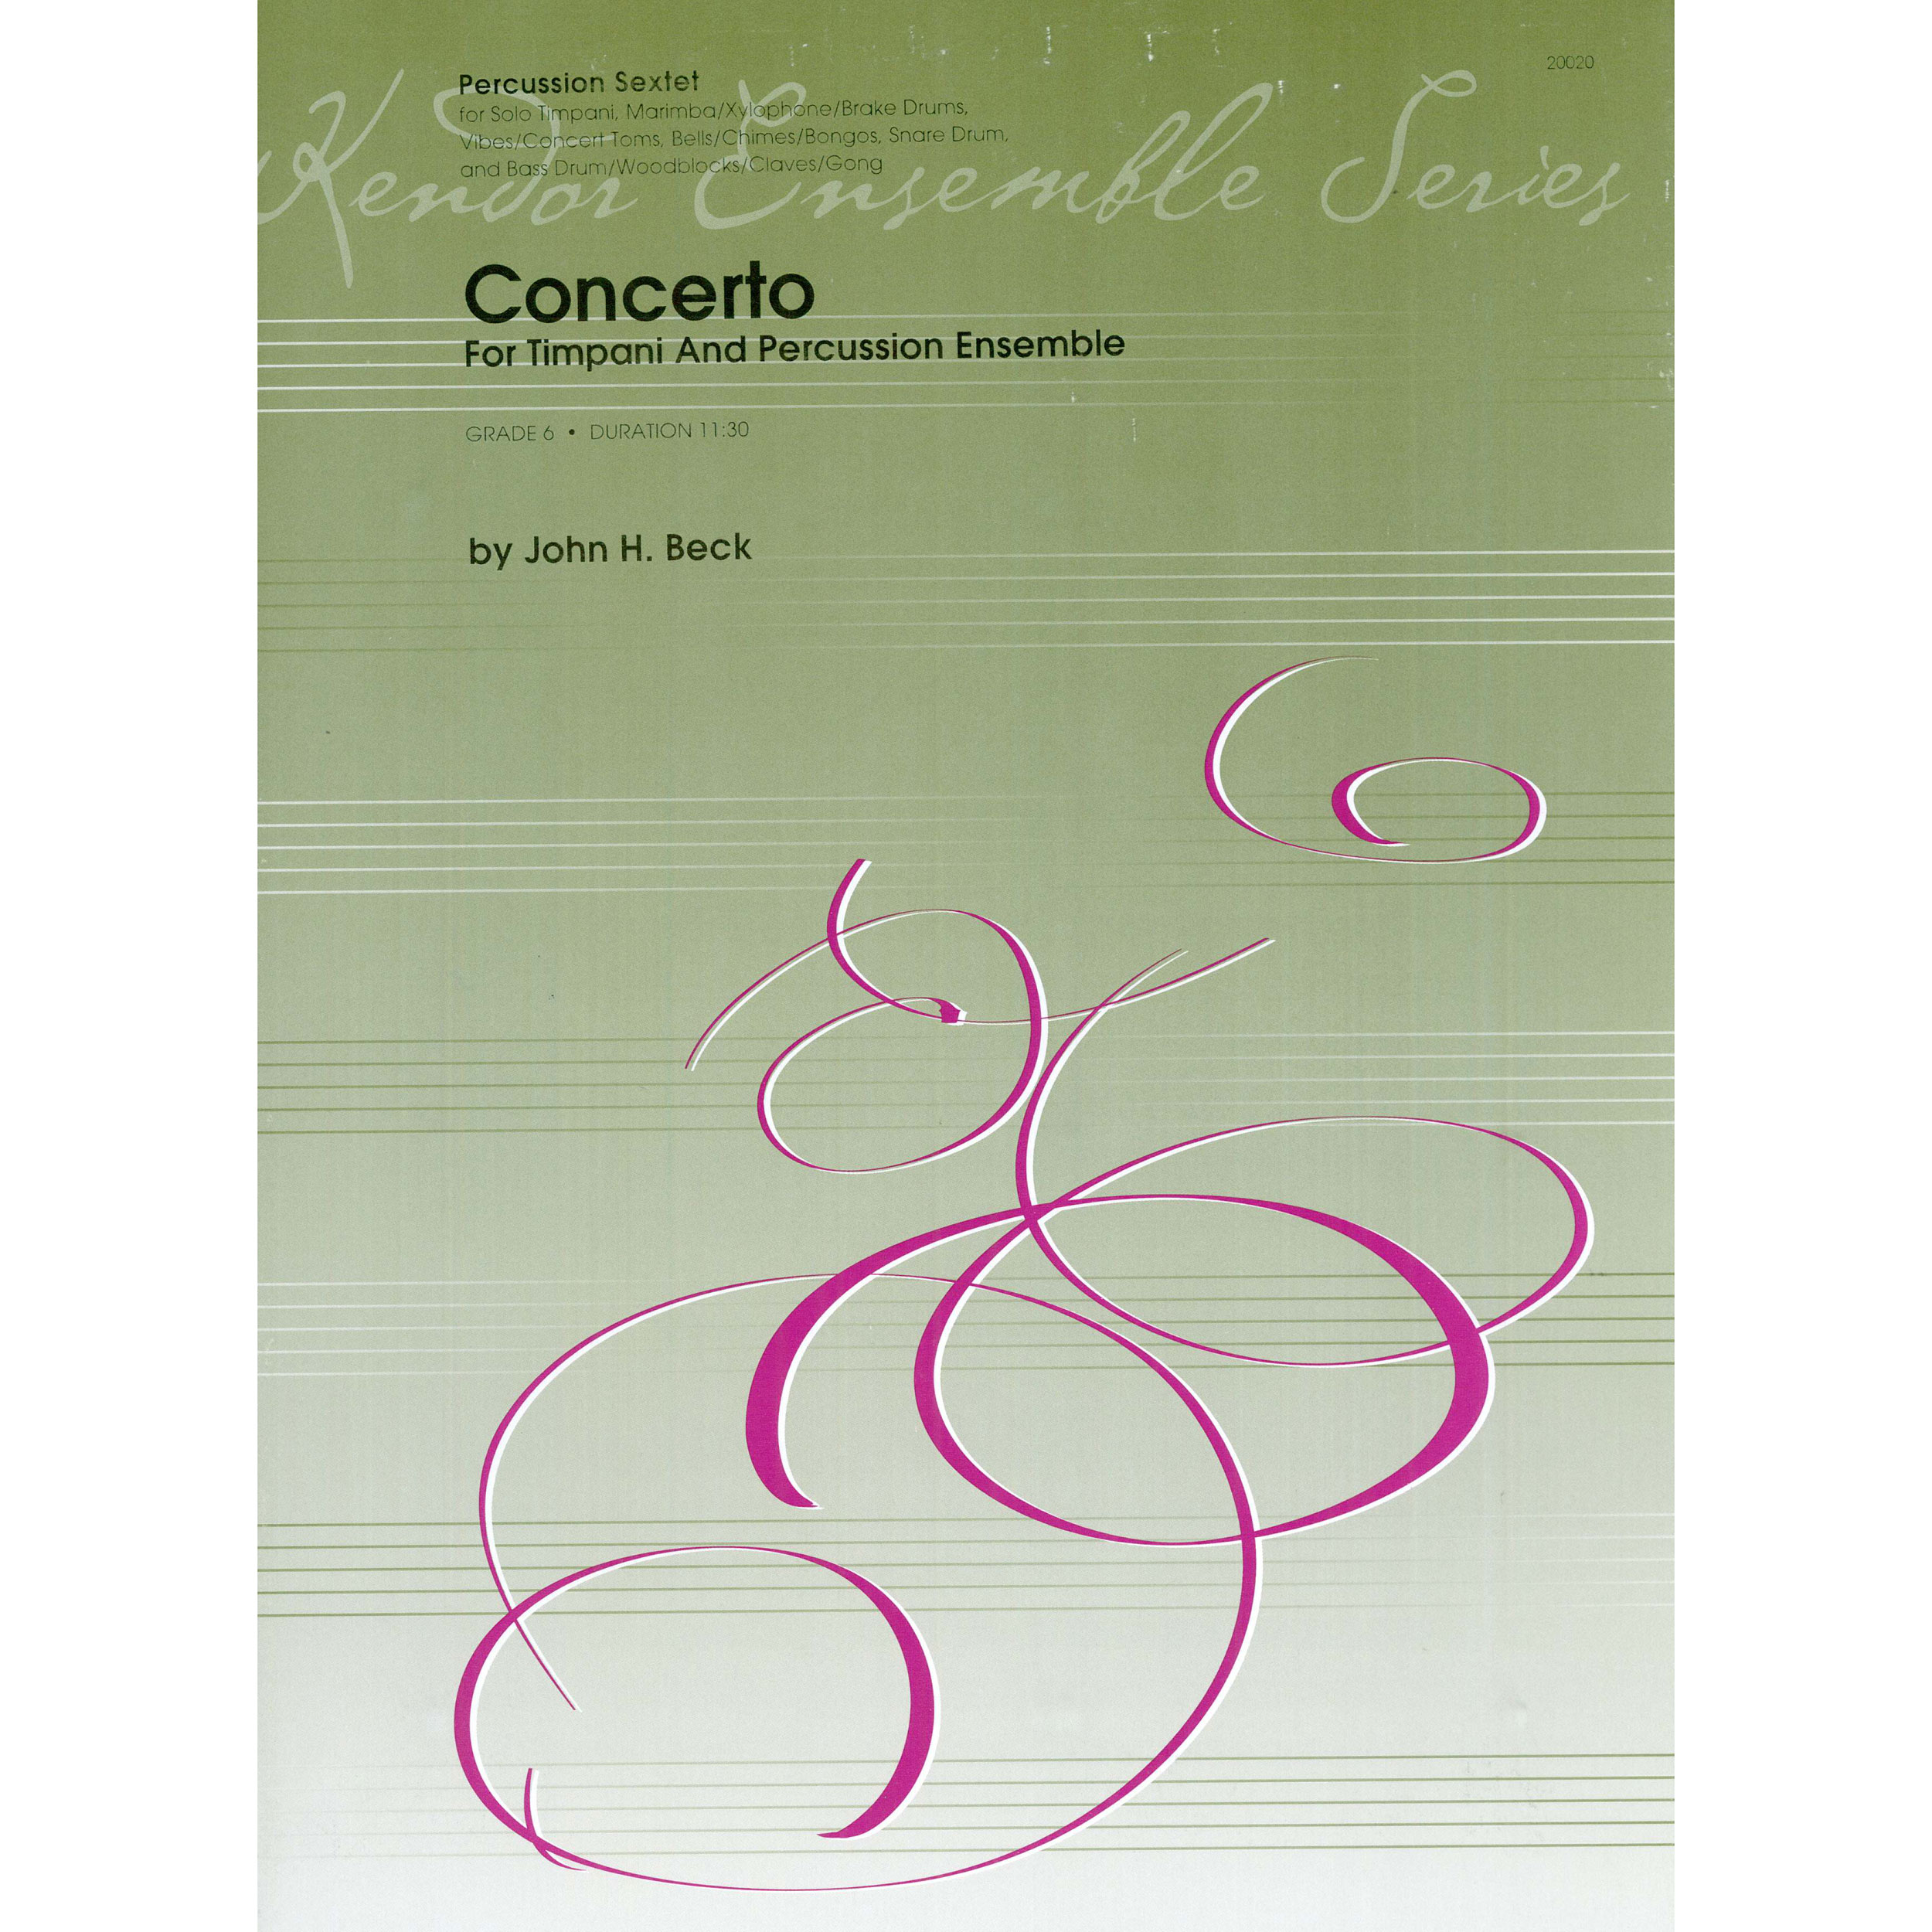 Concerto For Timpani And Percussion Ensemble by John Beck